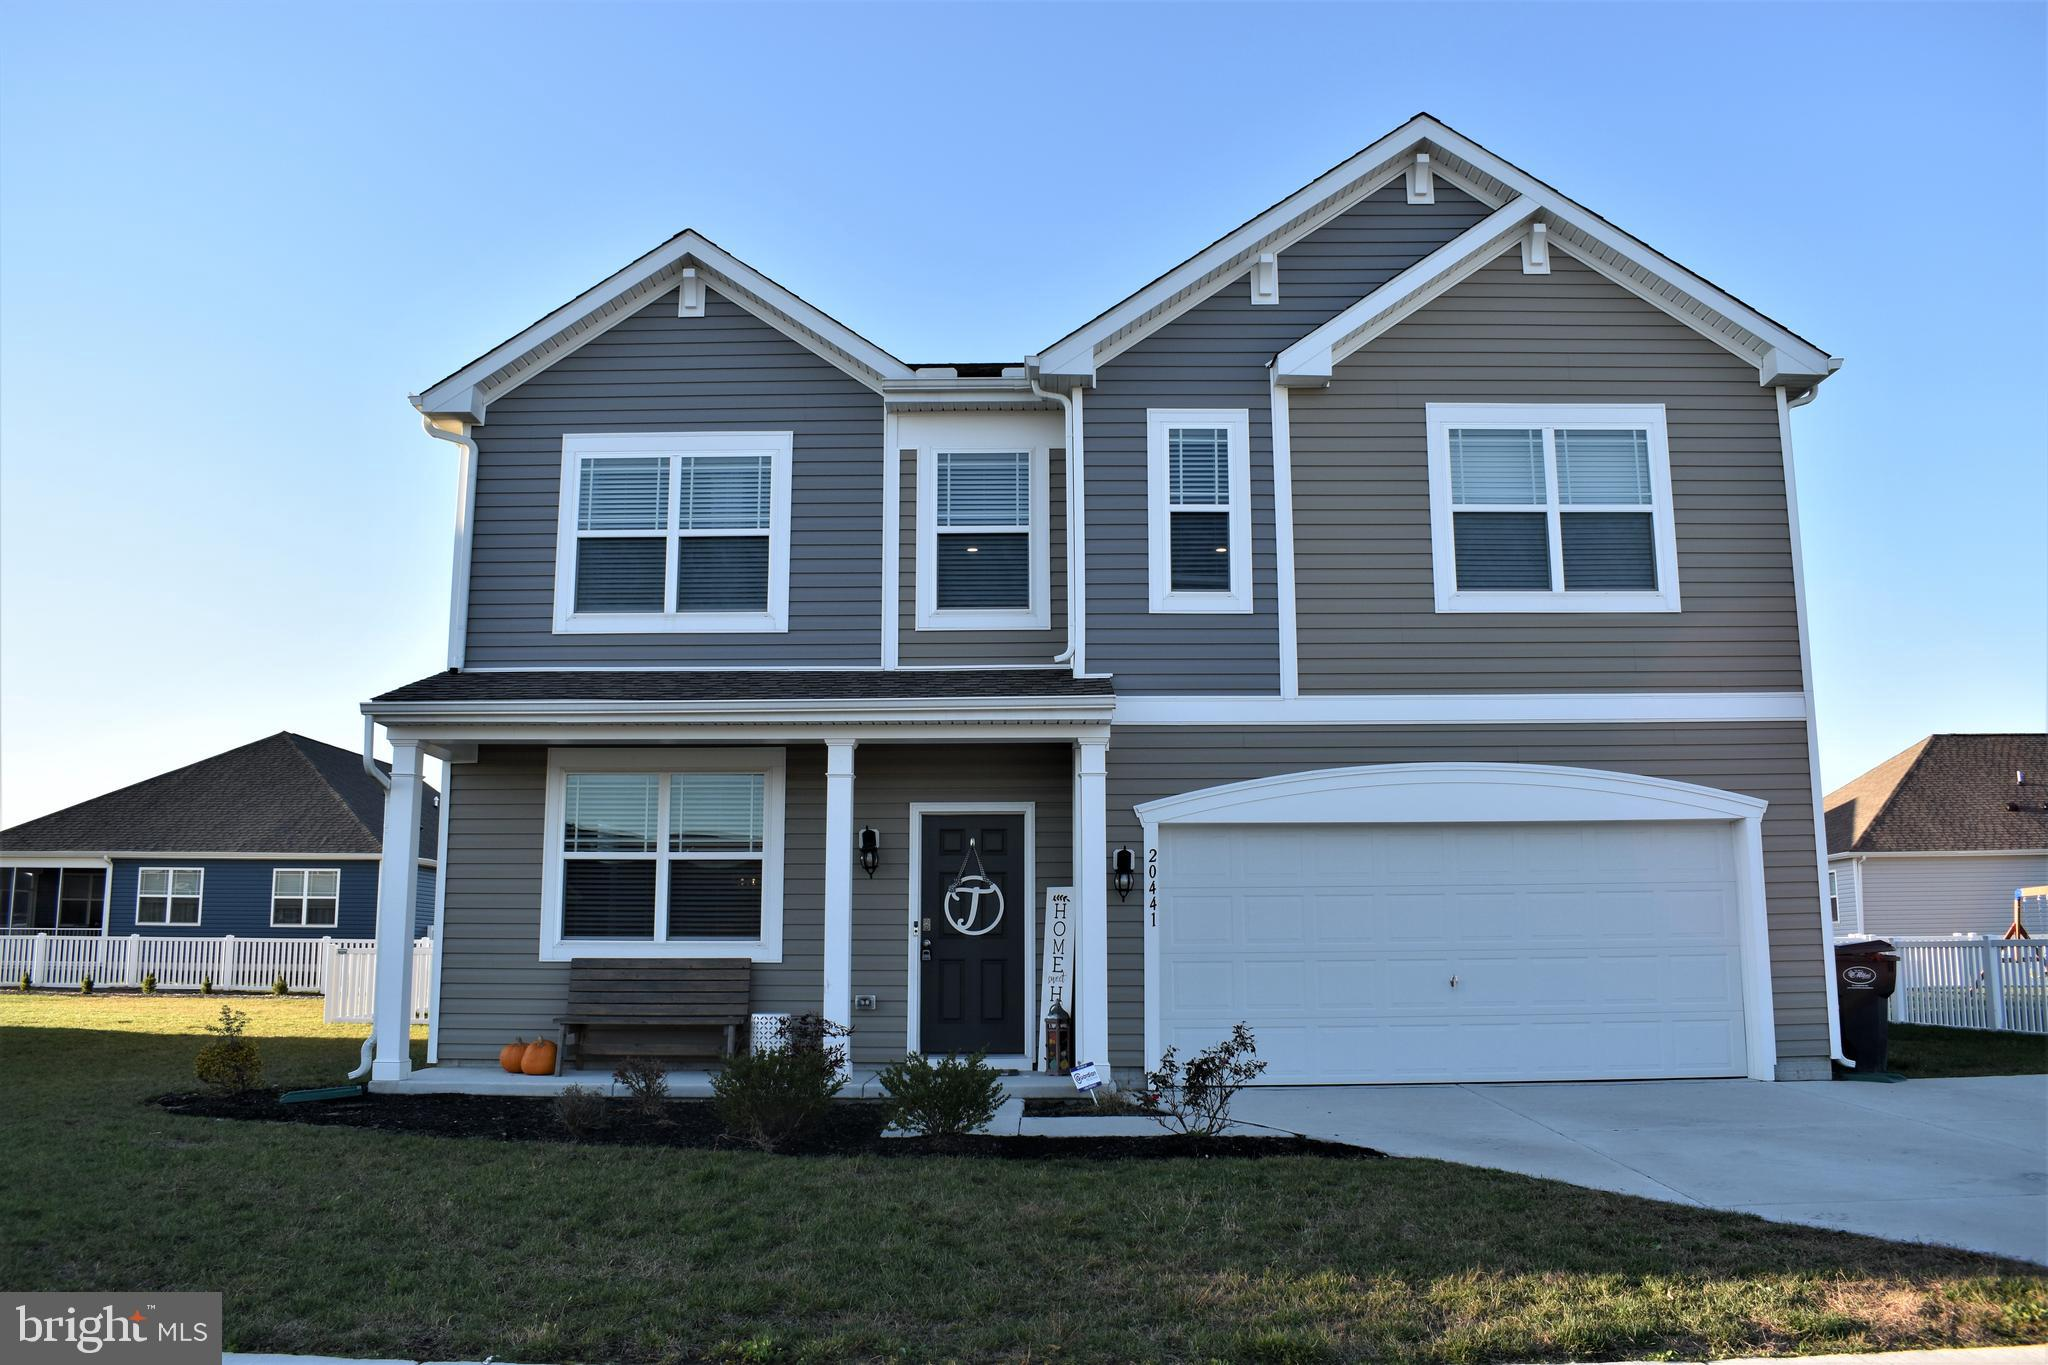 Welcome to your new home! Step inside and see everything this home has to offer. The first floor has